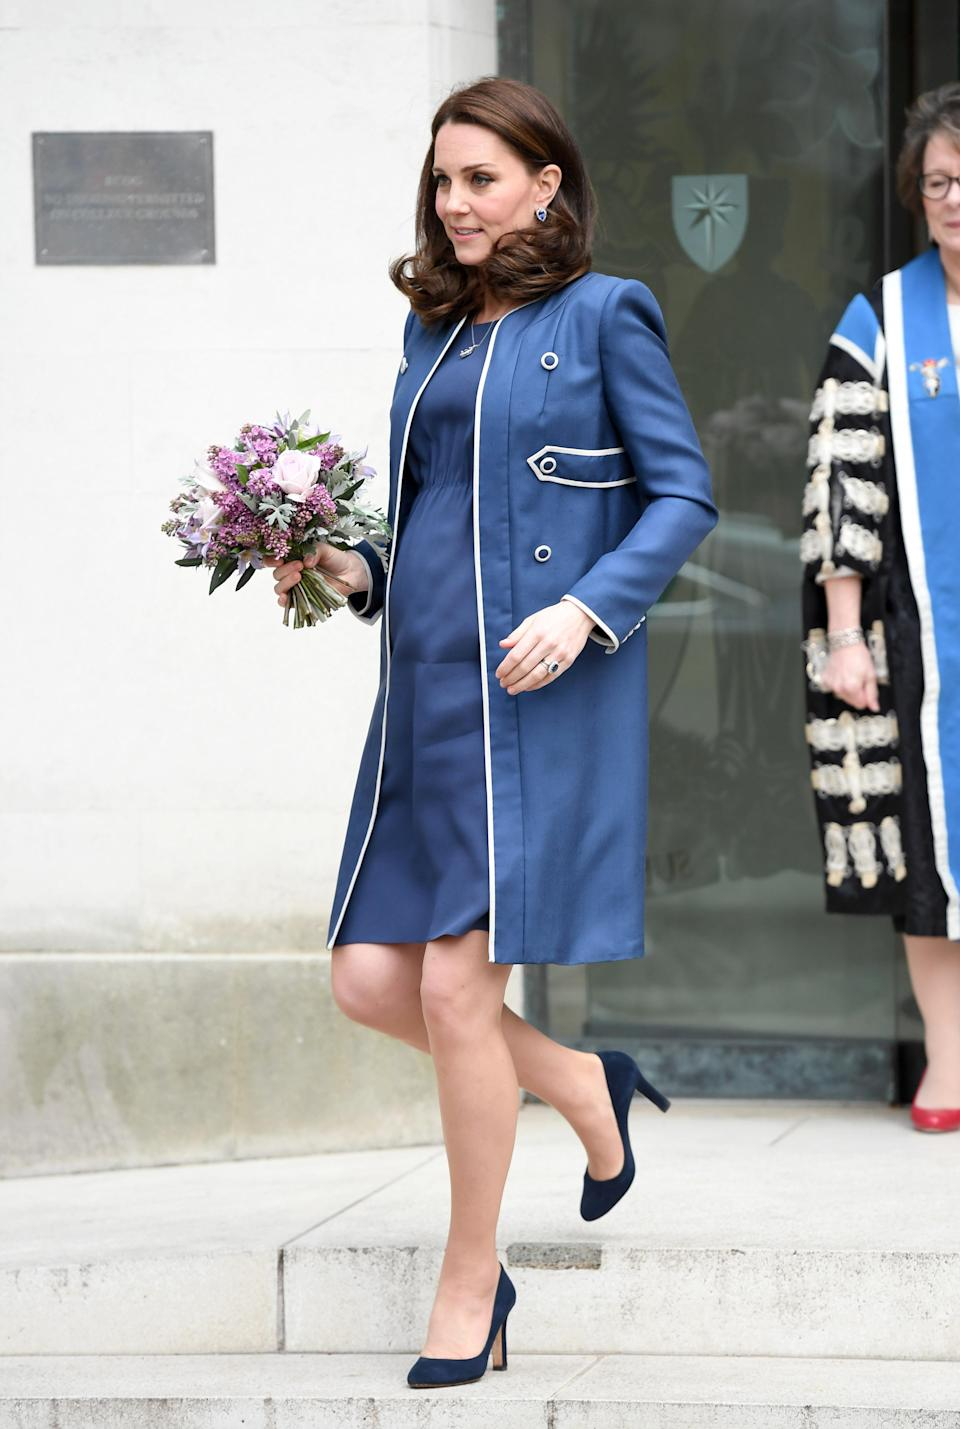 <p><strong>The occassion:</strong> Visiting the Royal College of Obstetricians and Gynaecologists in London.<br><strong>The look: </strong>A bespoke Jenny Packham coat over a matching dress, accessorised with a clutch, Jimmy Choo pumps, and sapphire jewels.<br>[Photo: Getty] </p>